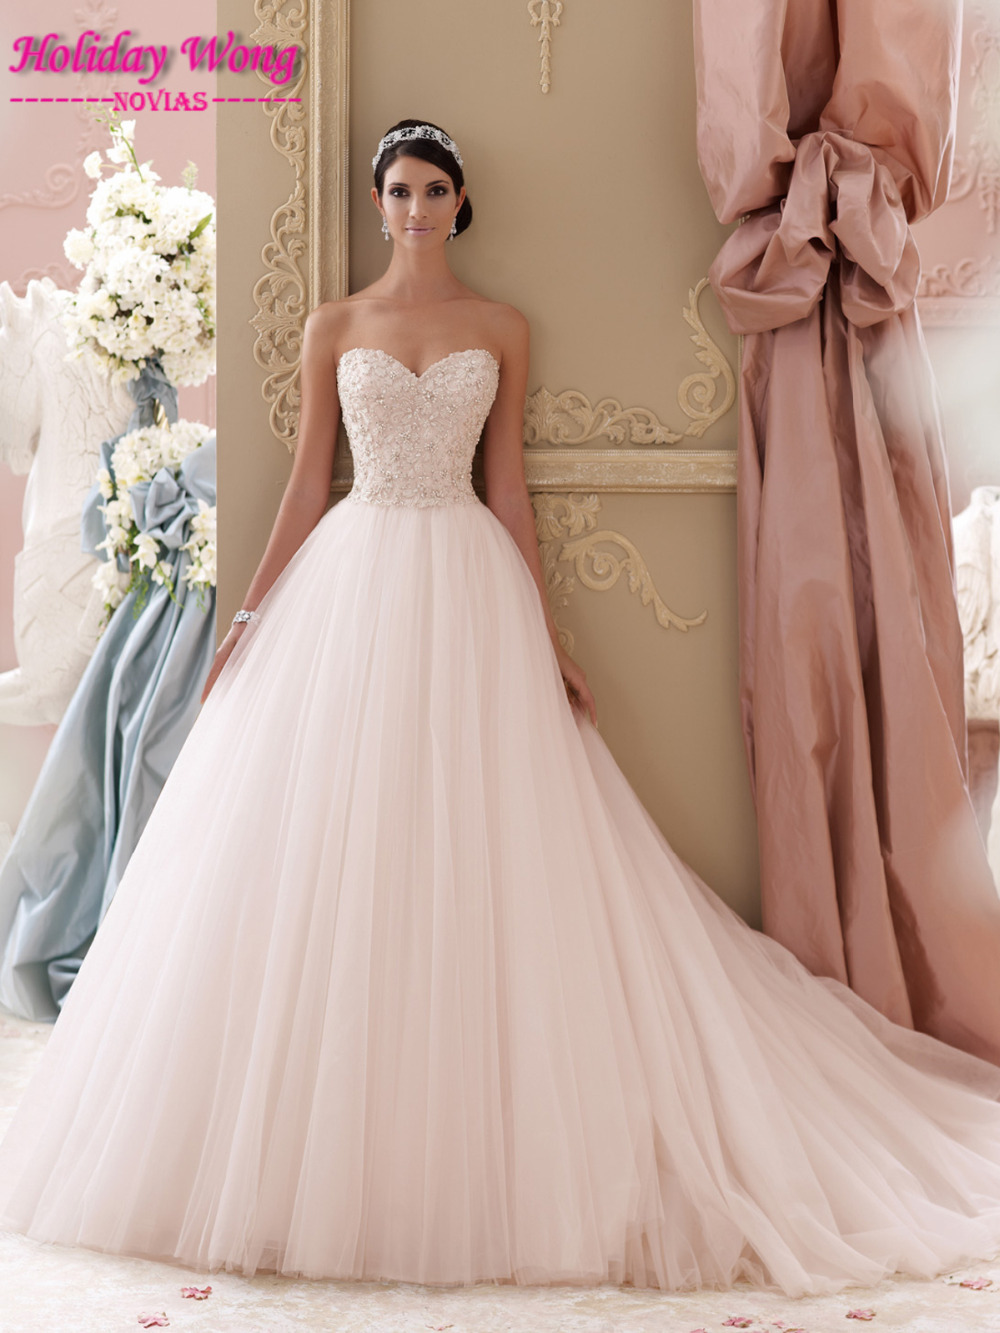 Hot S Wedding Summer A Line Sweetheart Sleeveless Beading Lace Party Pale Pink Dress 115250 In Dresses From Weddings Events On